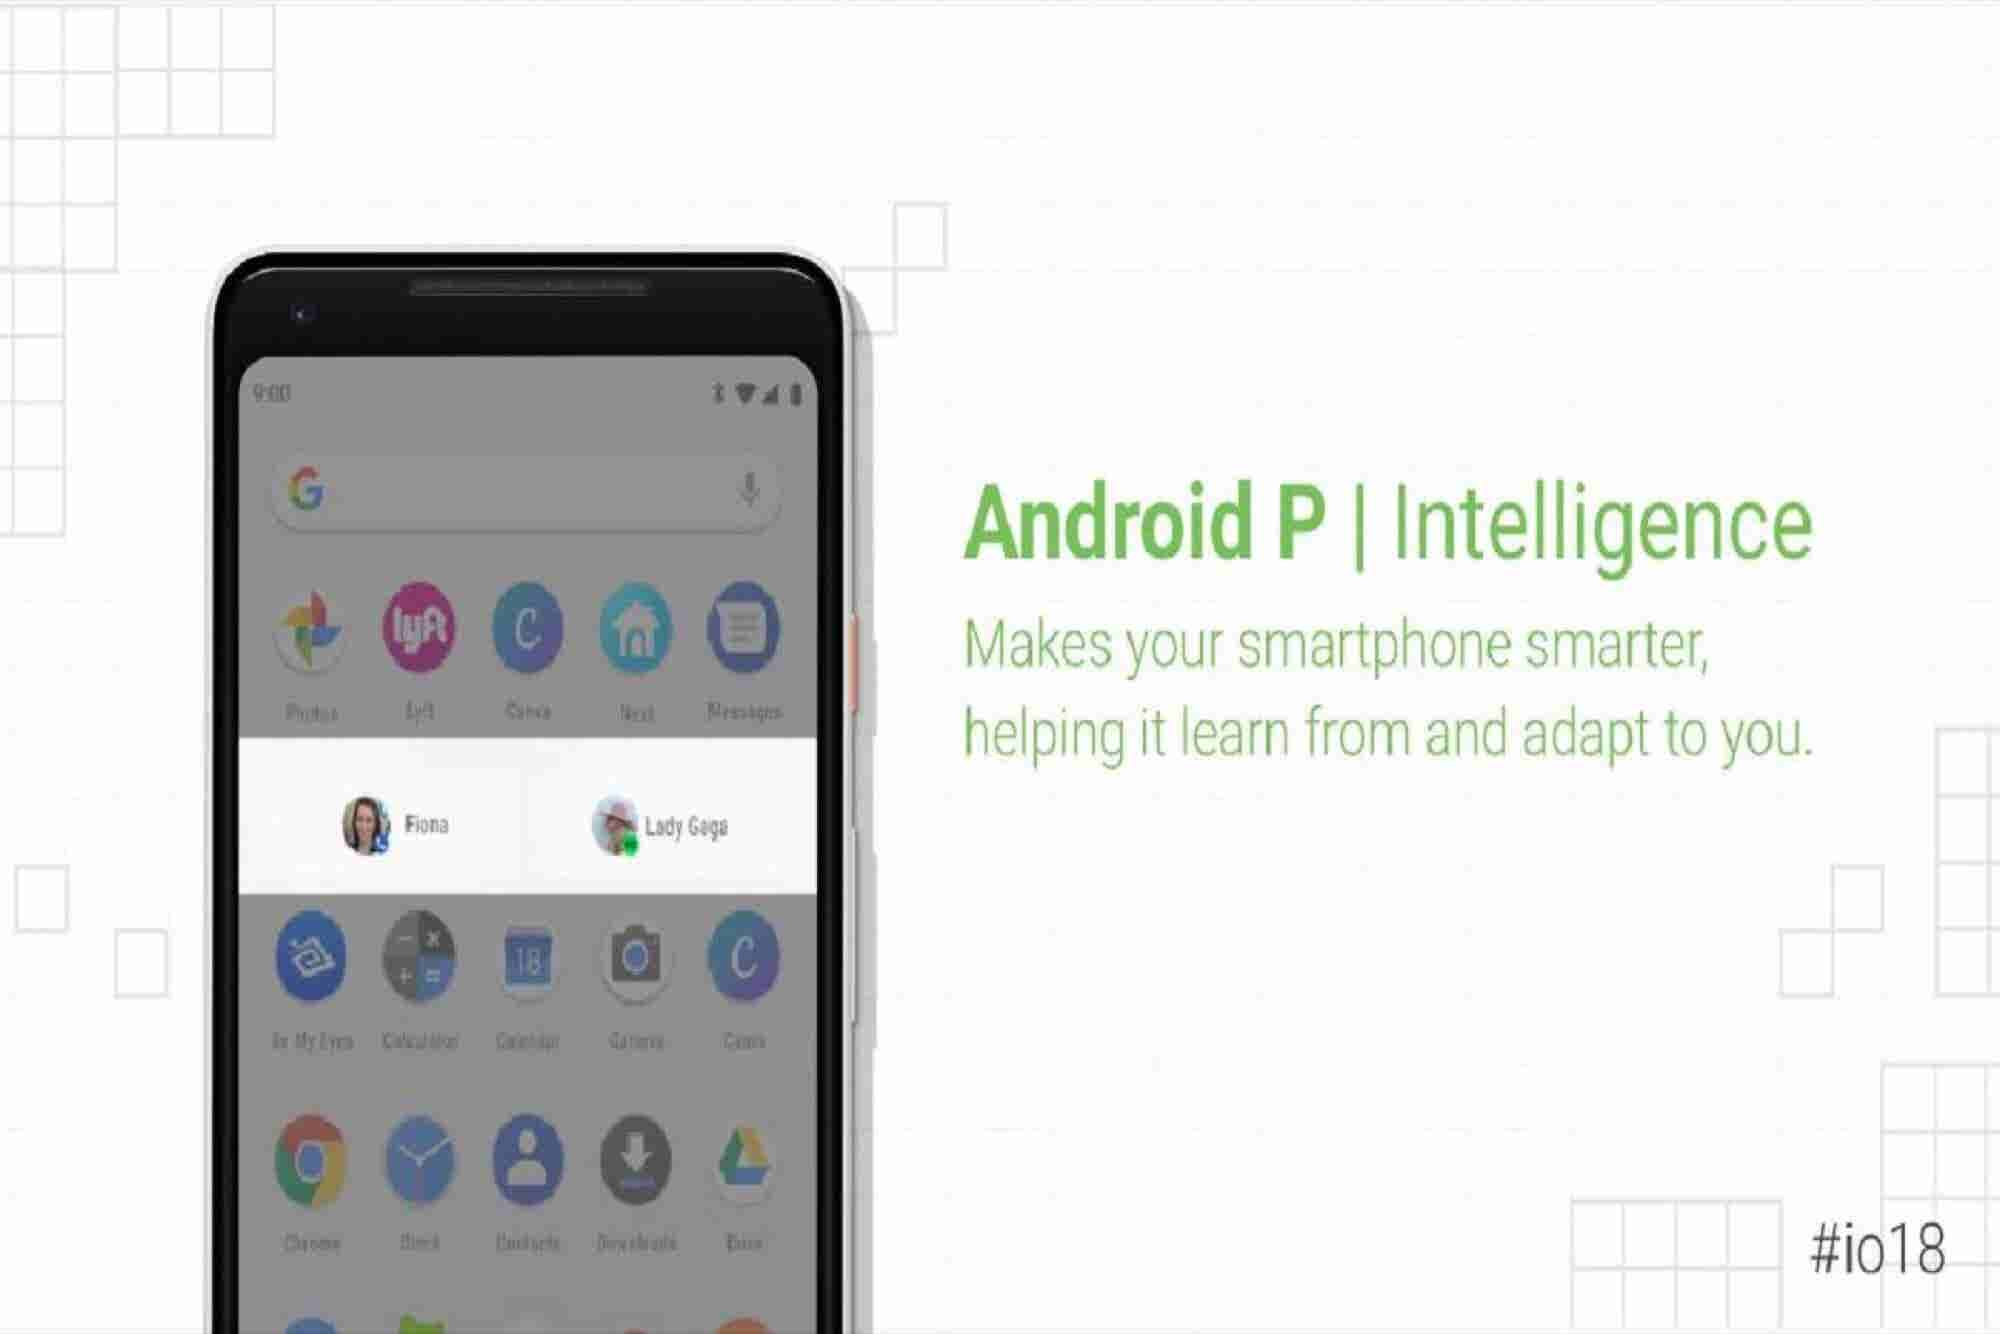 Five New features of Google's Android P You Can't Afford to Miss